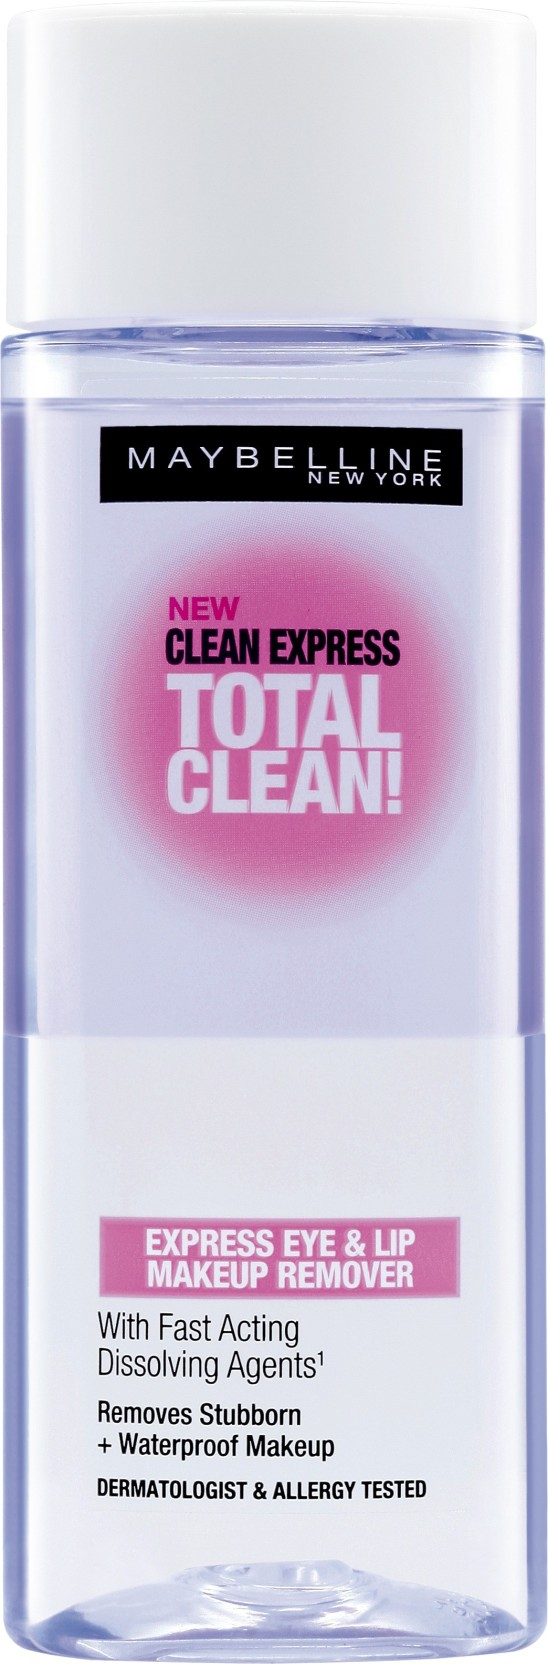 Maybelline Clean Express Total Clean Express Eye & Lip Makeup Remover Makeup Remover. ADD TO CART